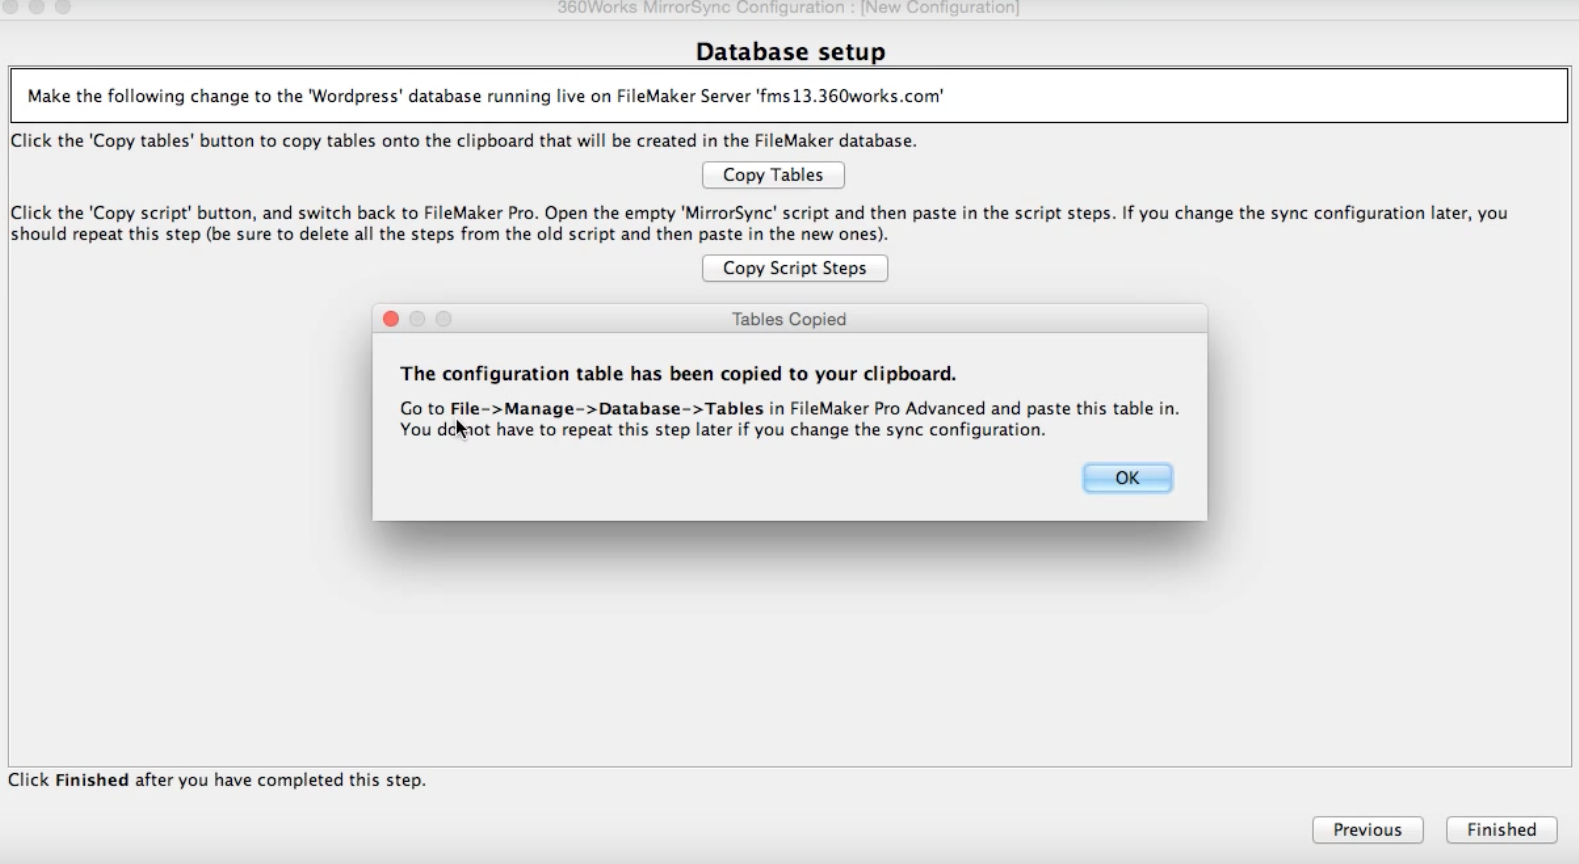 FileMaker Database Setup. Copy to your clipboard and paste.